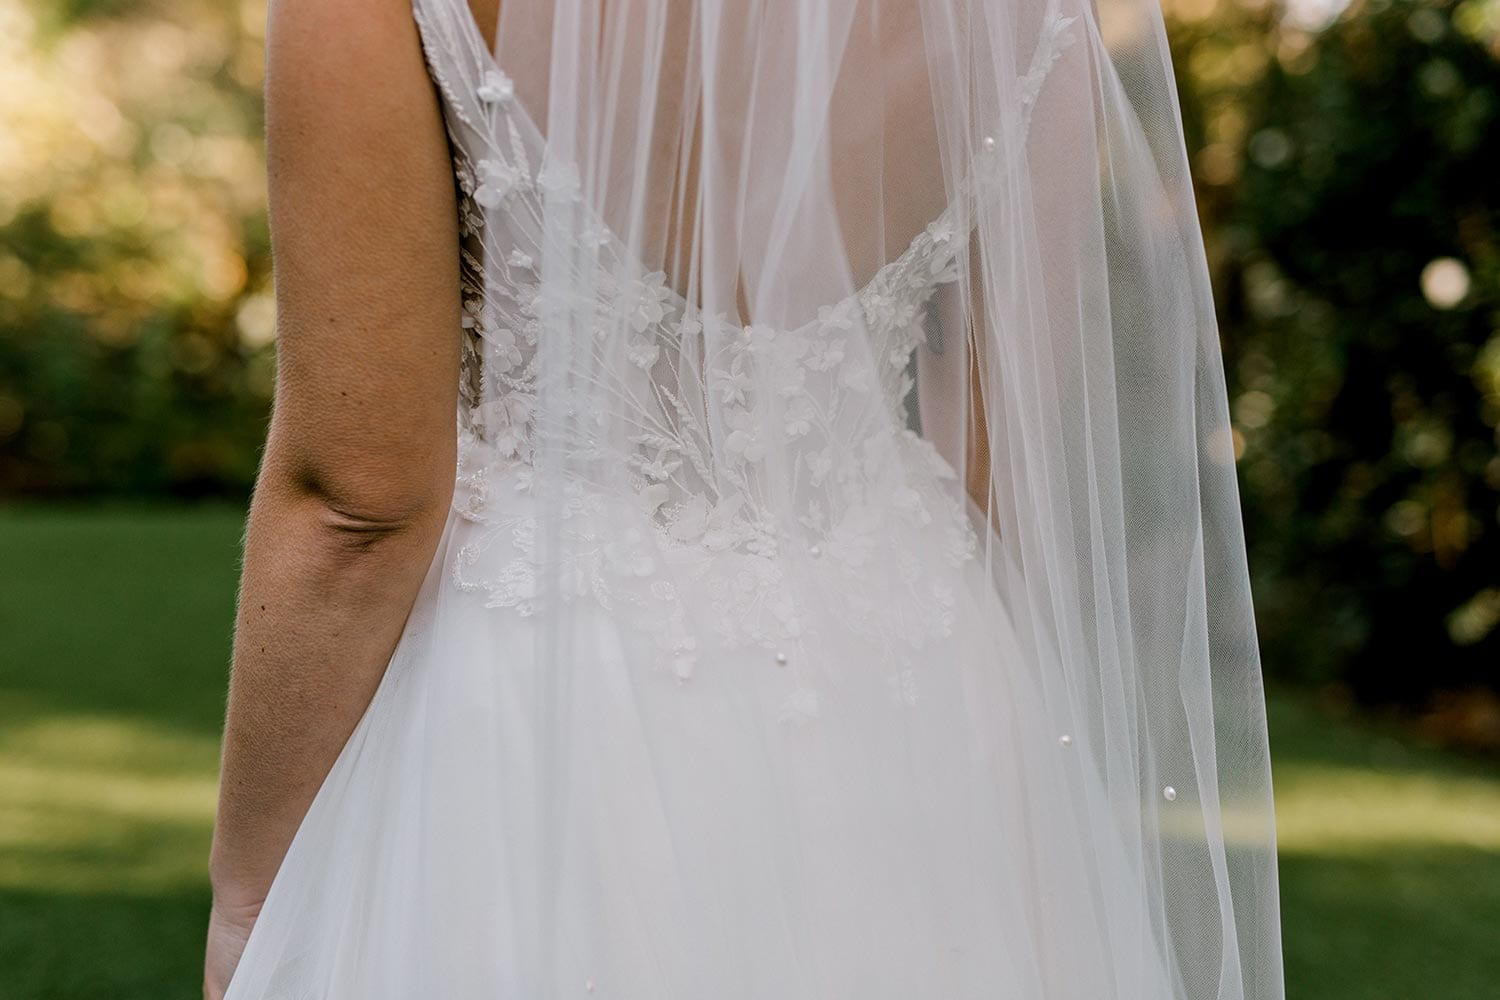 Serena Wedding Gown from Vinka Design - Classic & feminine wedding gown. Deep V-neckline semi-sheer structured bodice appliqued with flowers & leaves. Dreamy layered soft tulle skirt with side-split. Close up detail of bodice and skirt at back. Photograph in landscaped gardens.